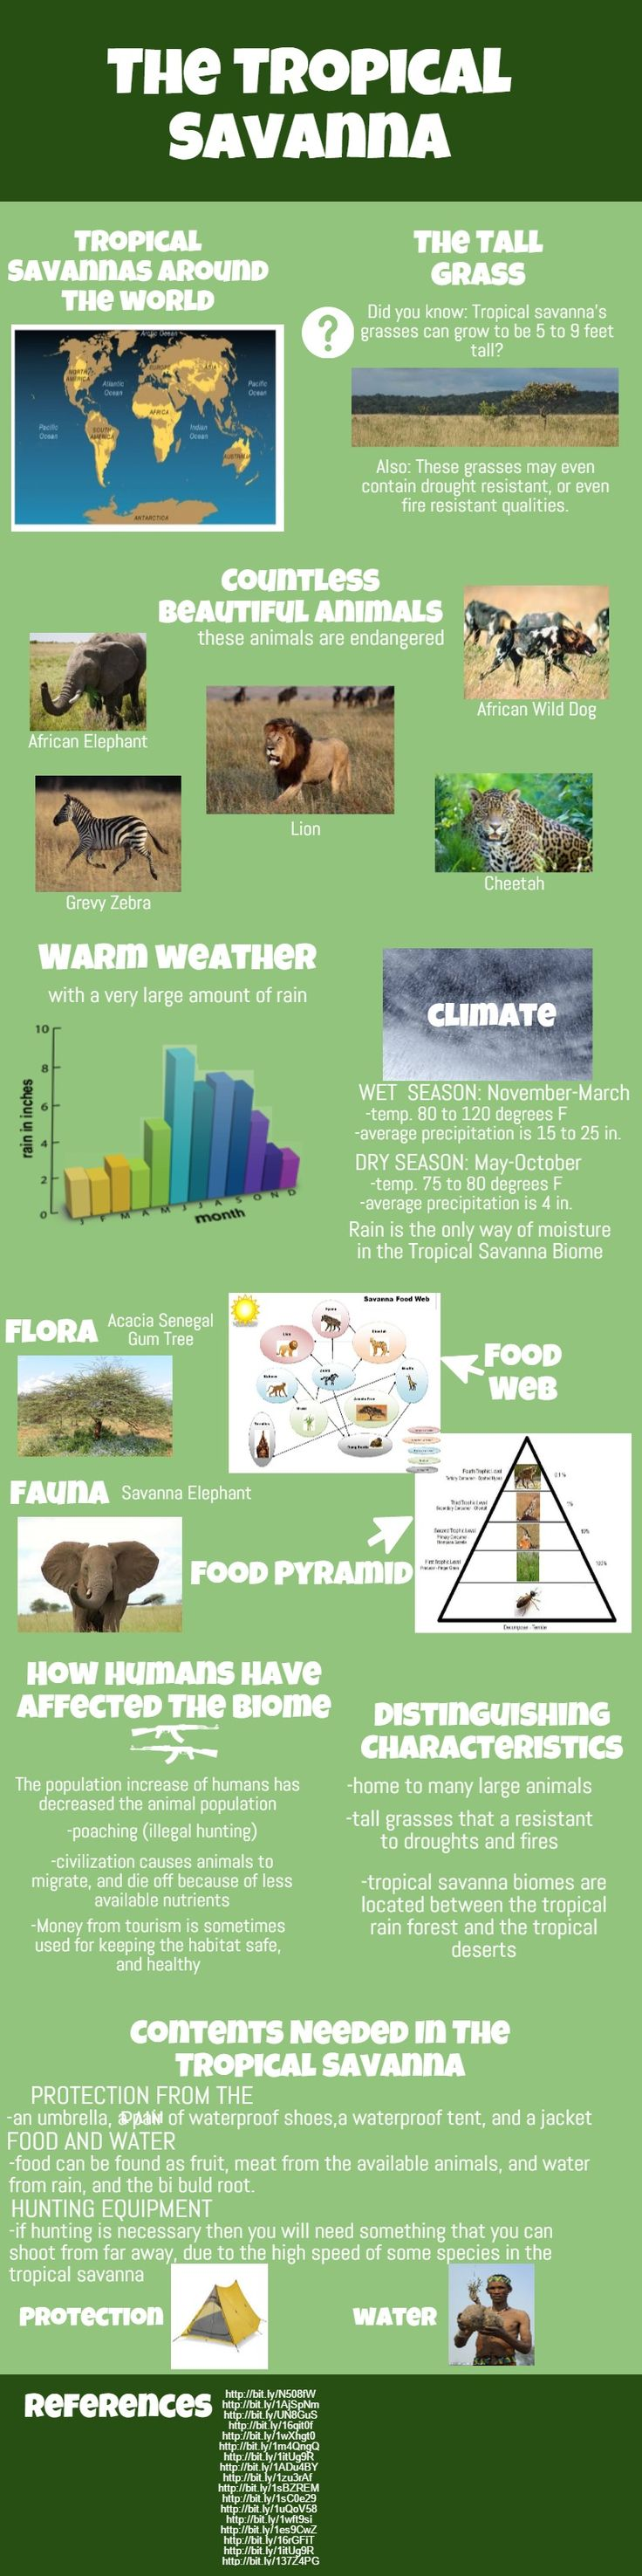 This infographic talks about the animals, location, plants, climate, etc. of the savanna.